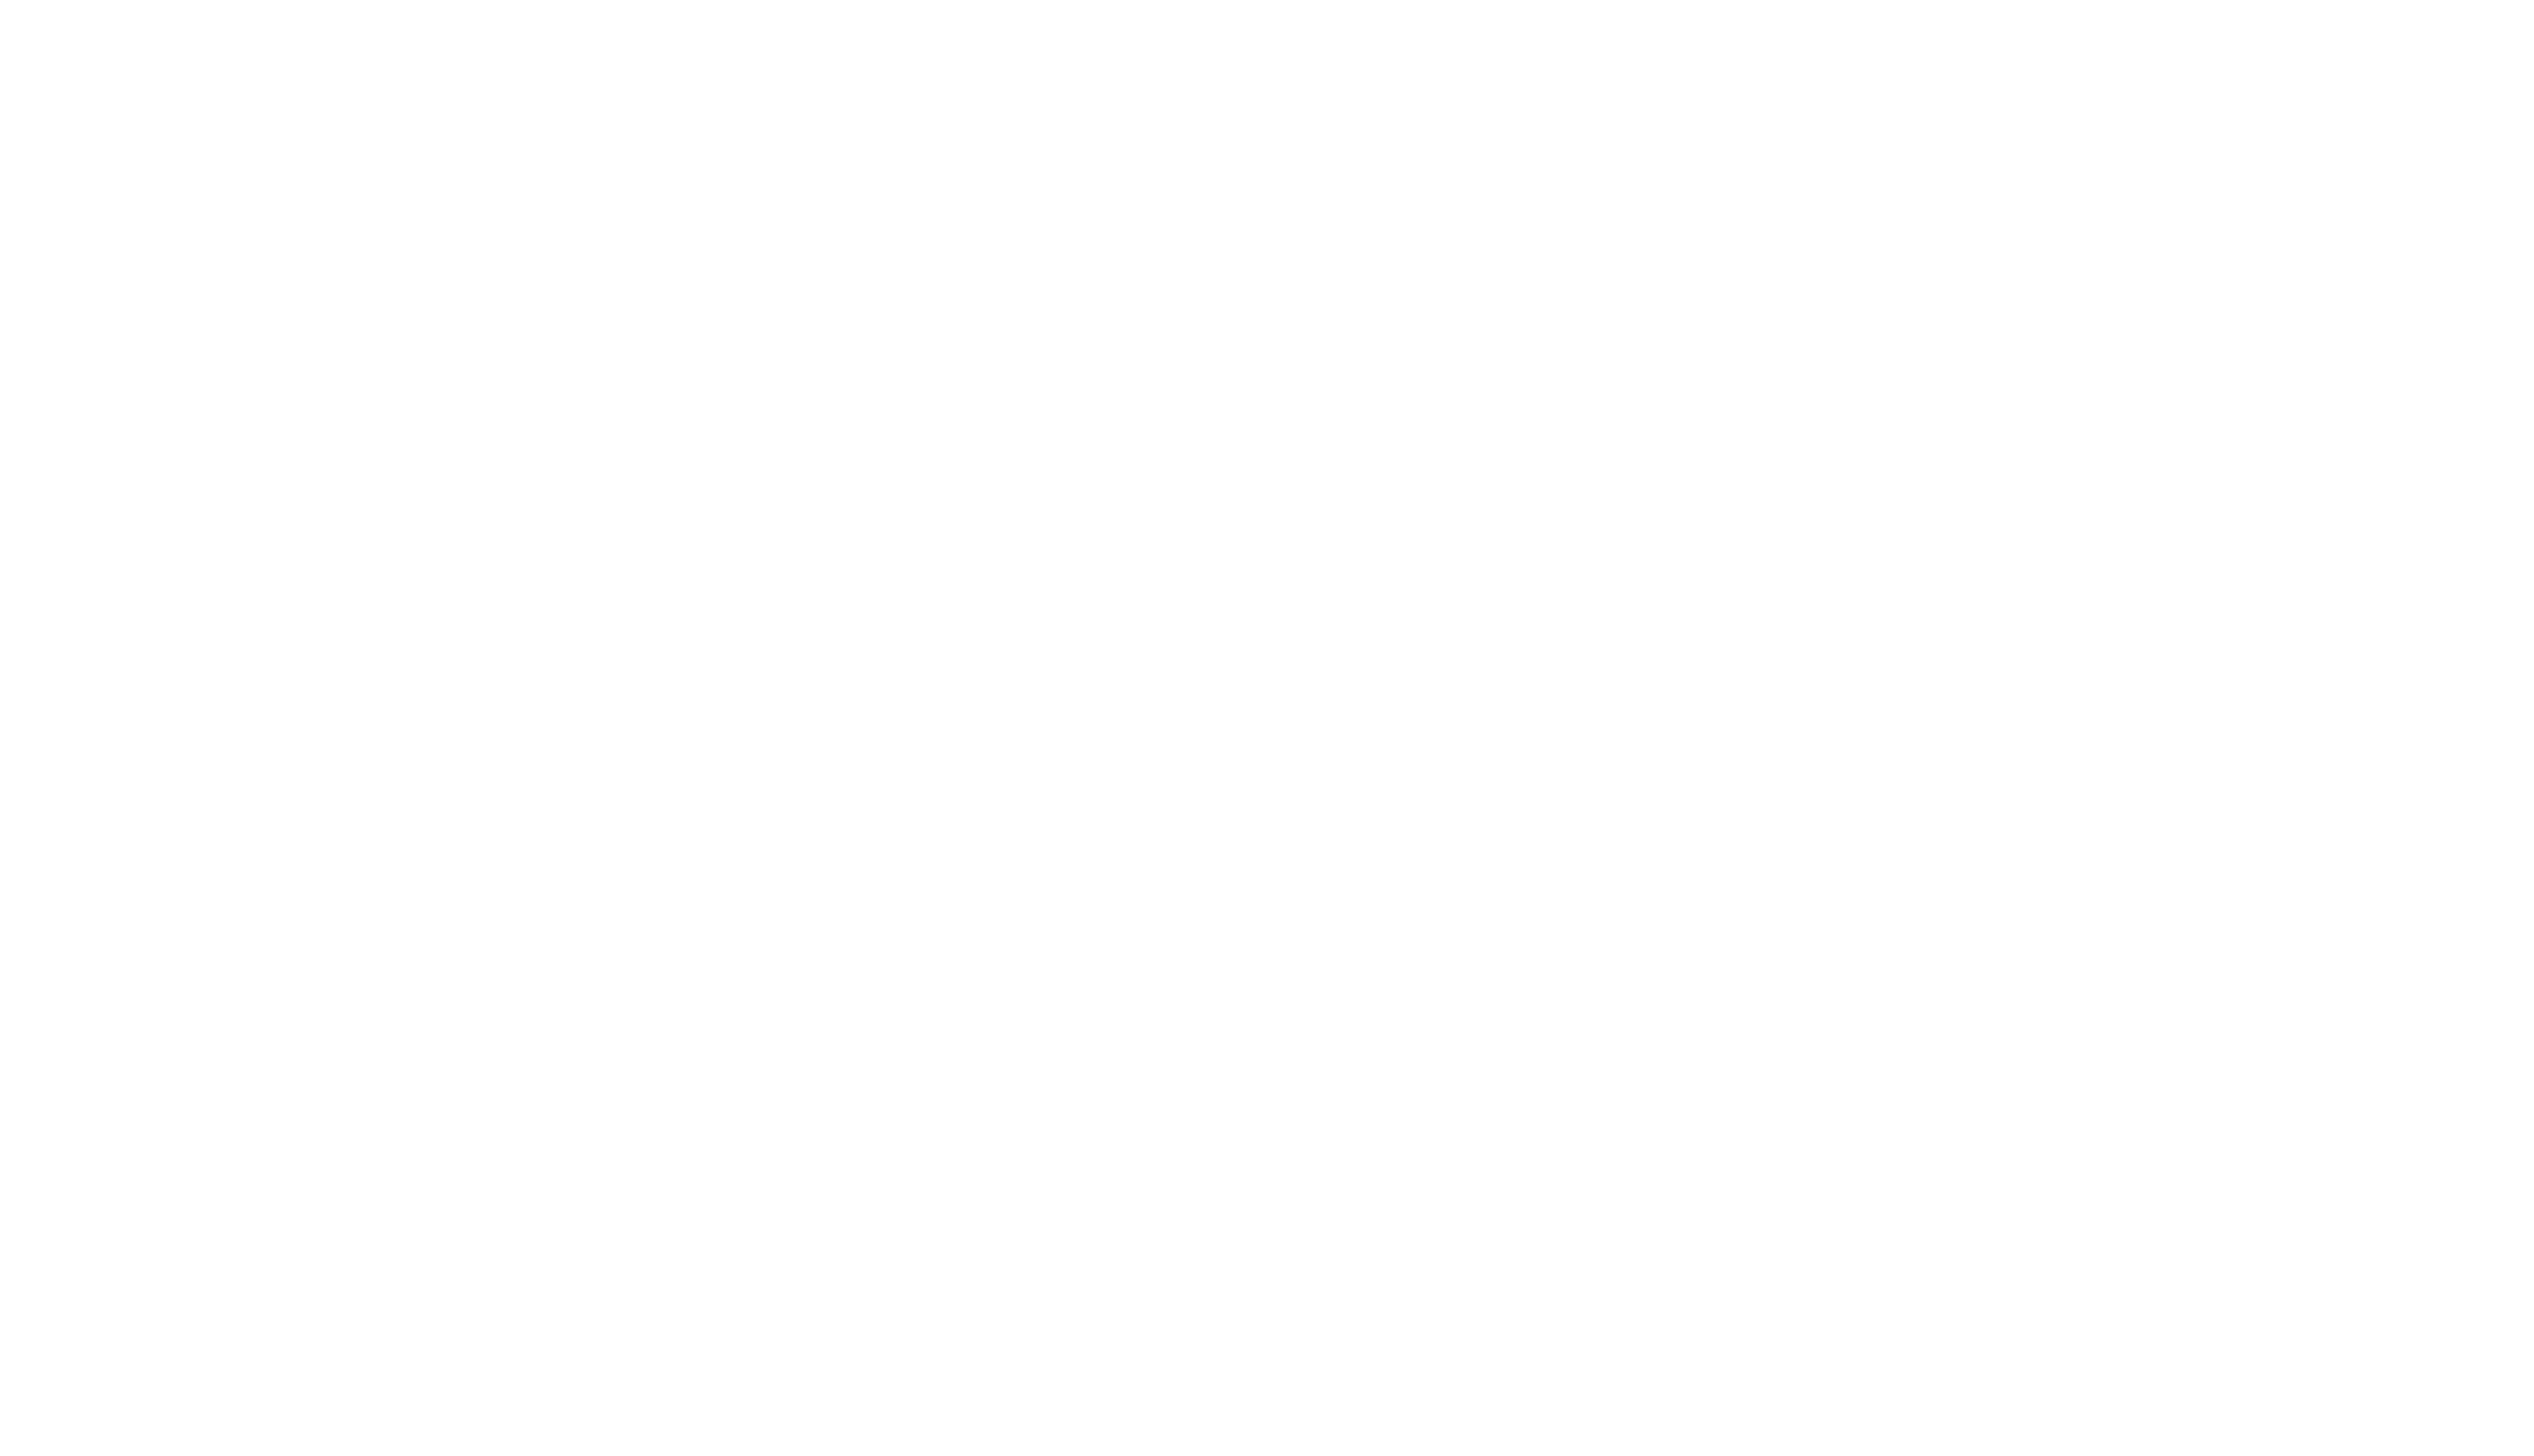 Brown Mama Monologues